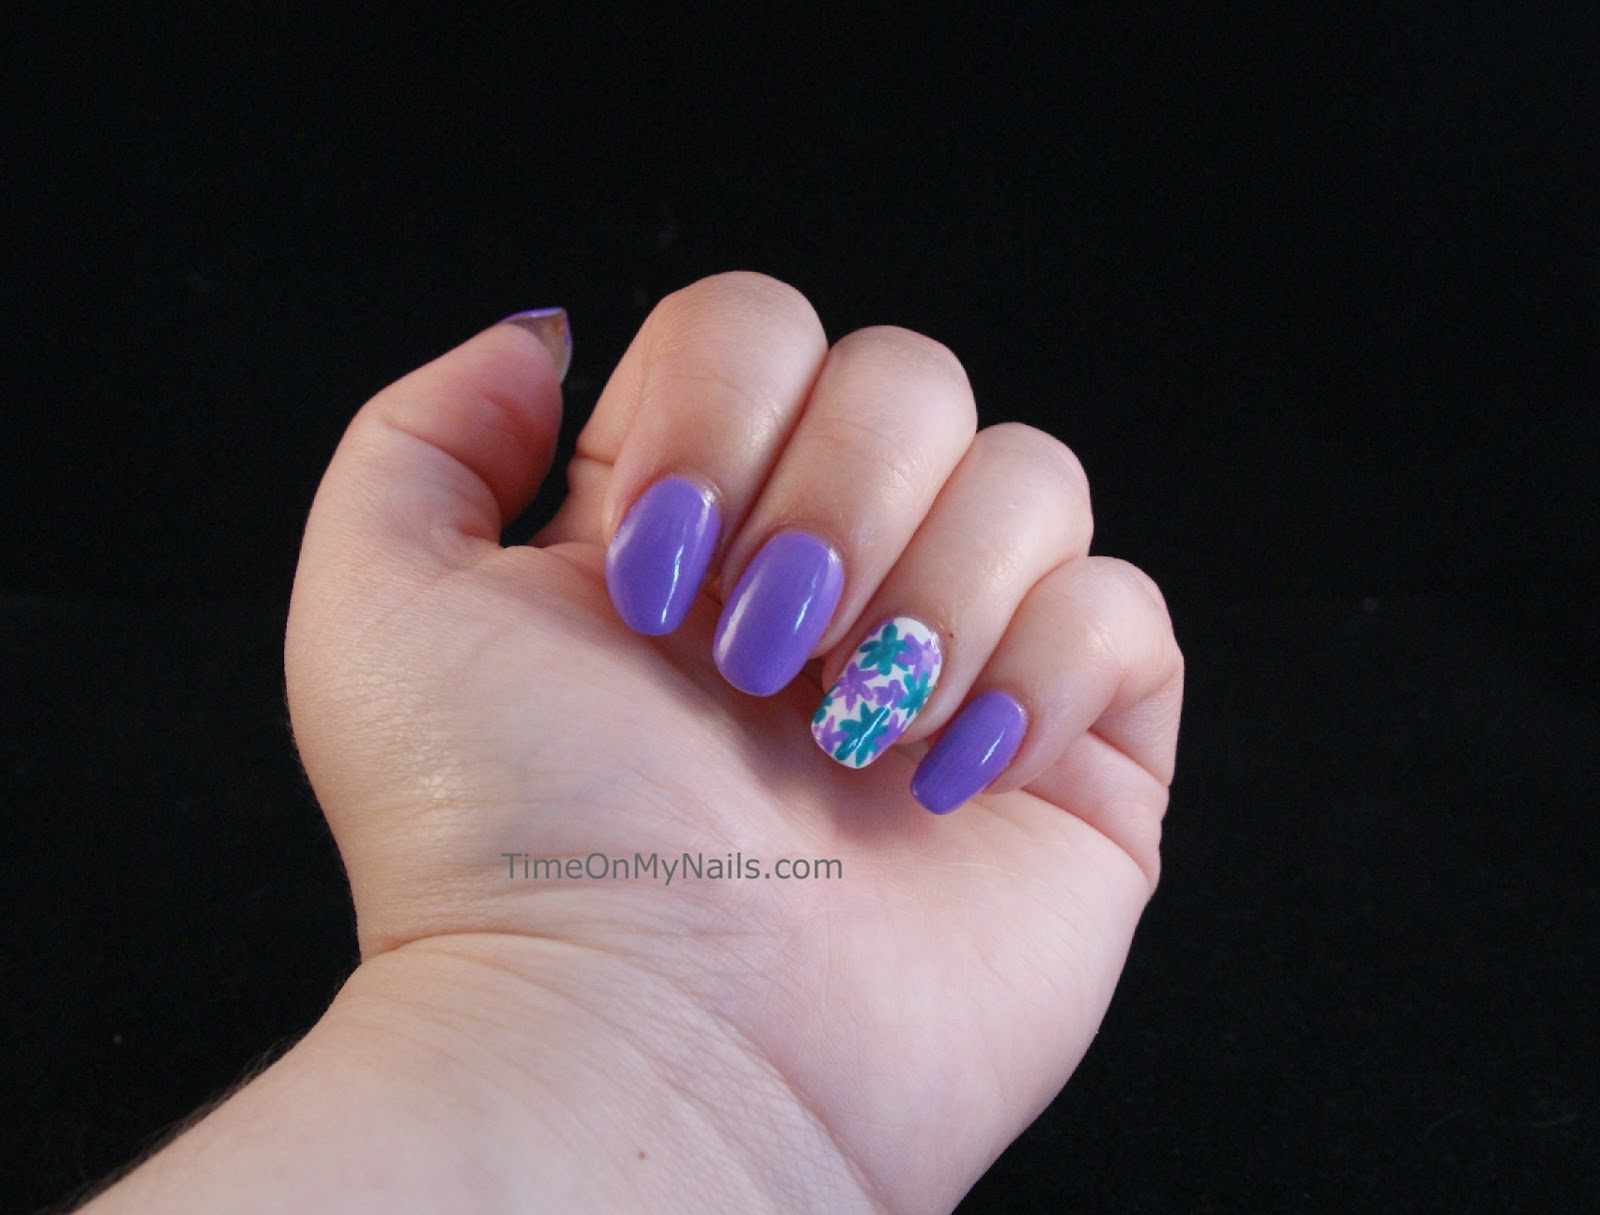 Drawing Lines On Nails : For nail art beginners who would like to practice drawing